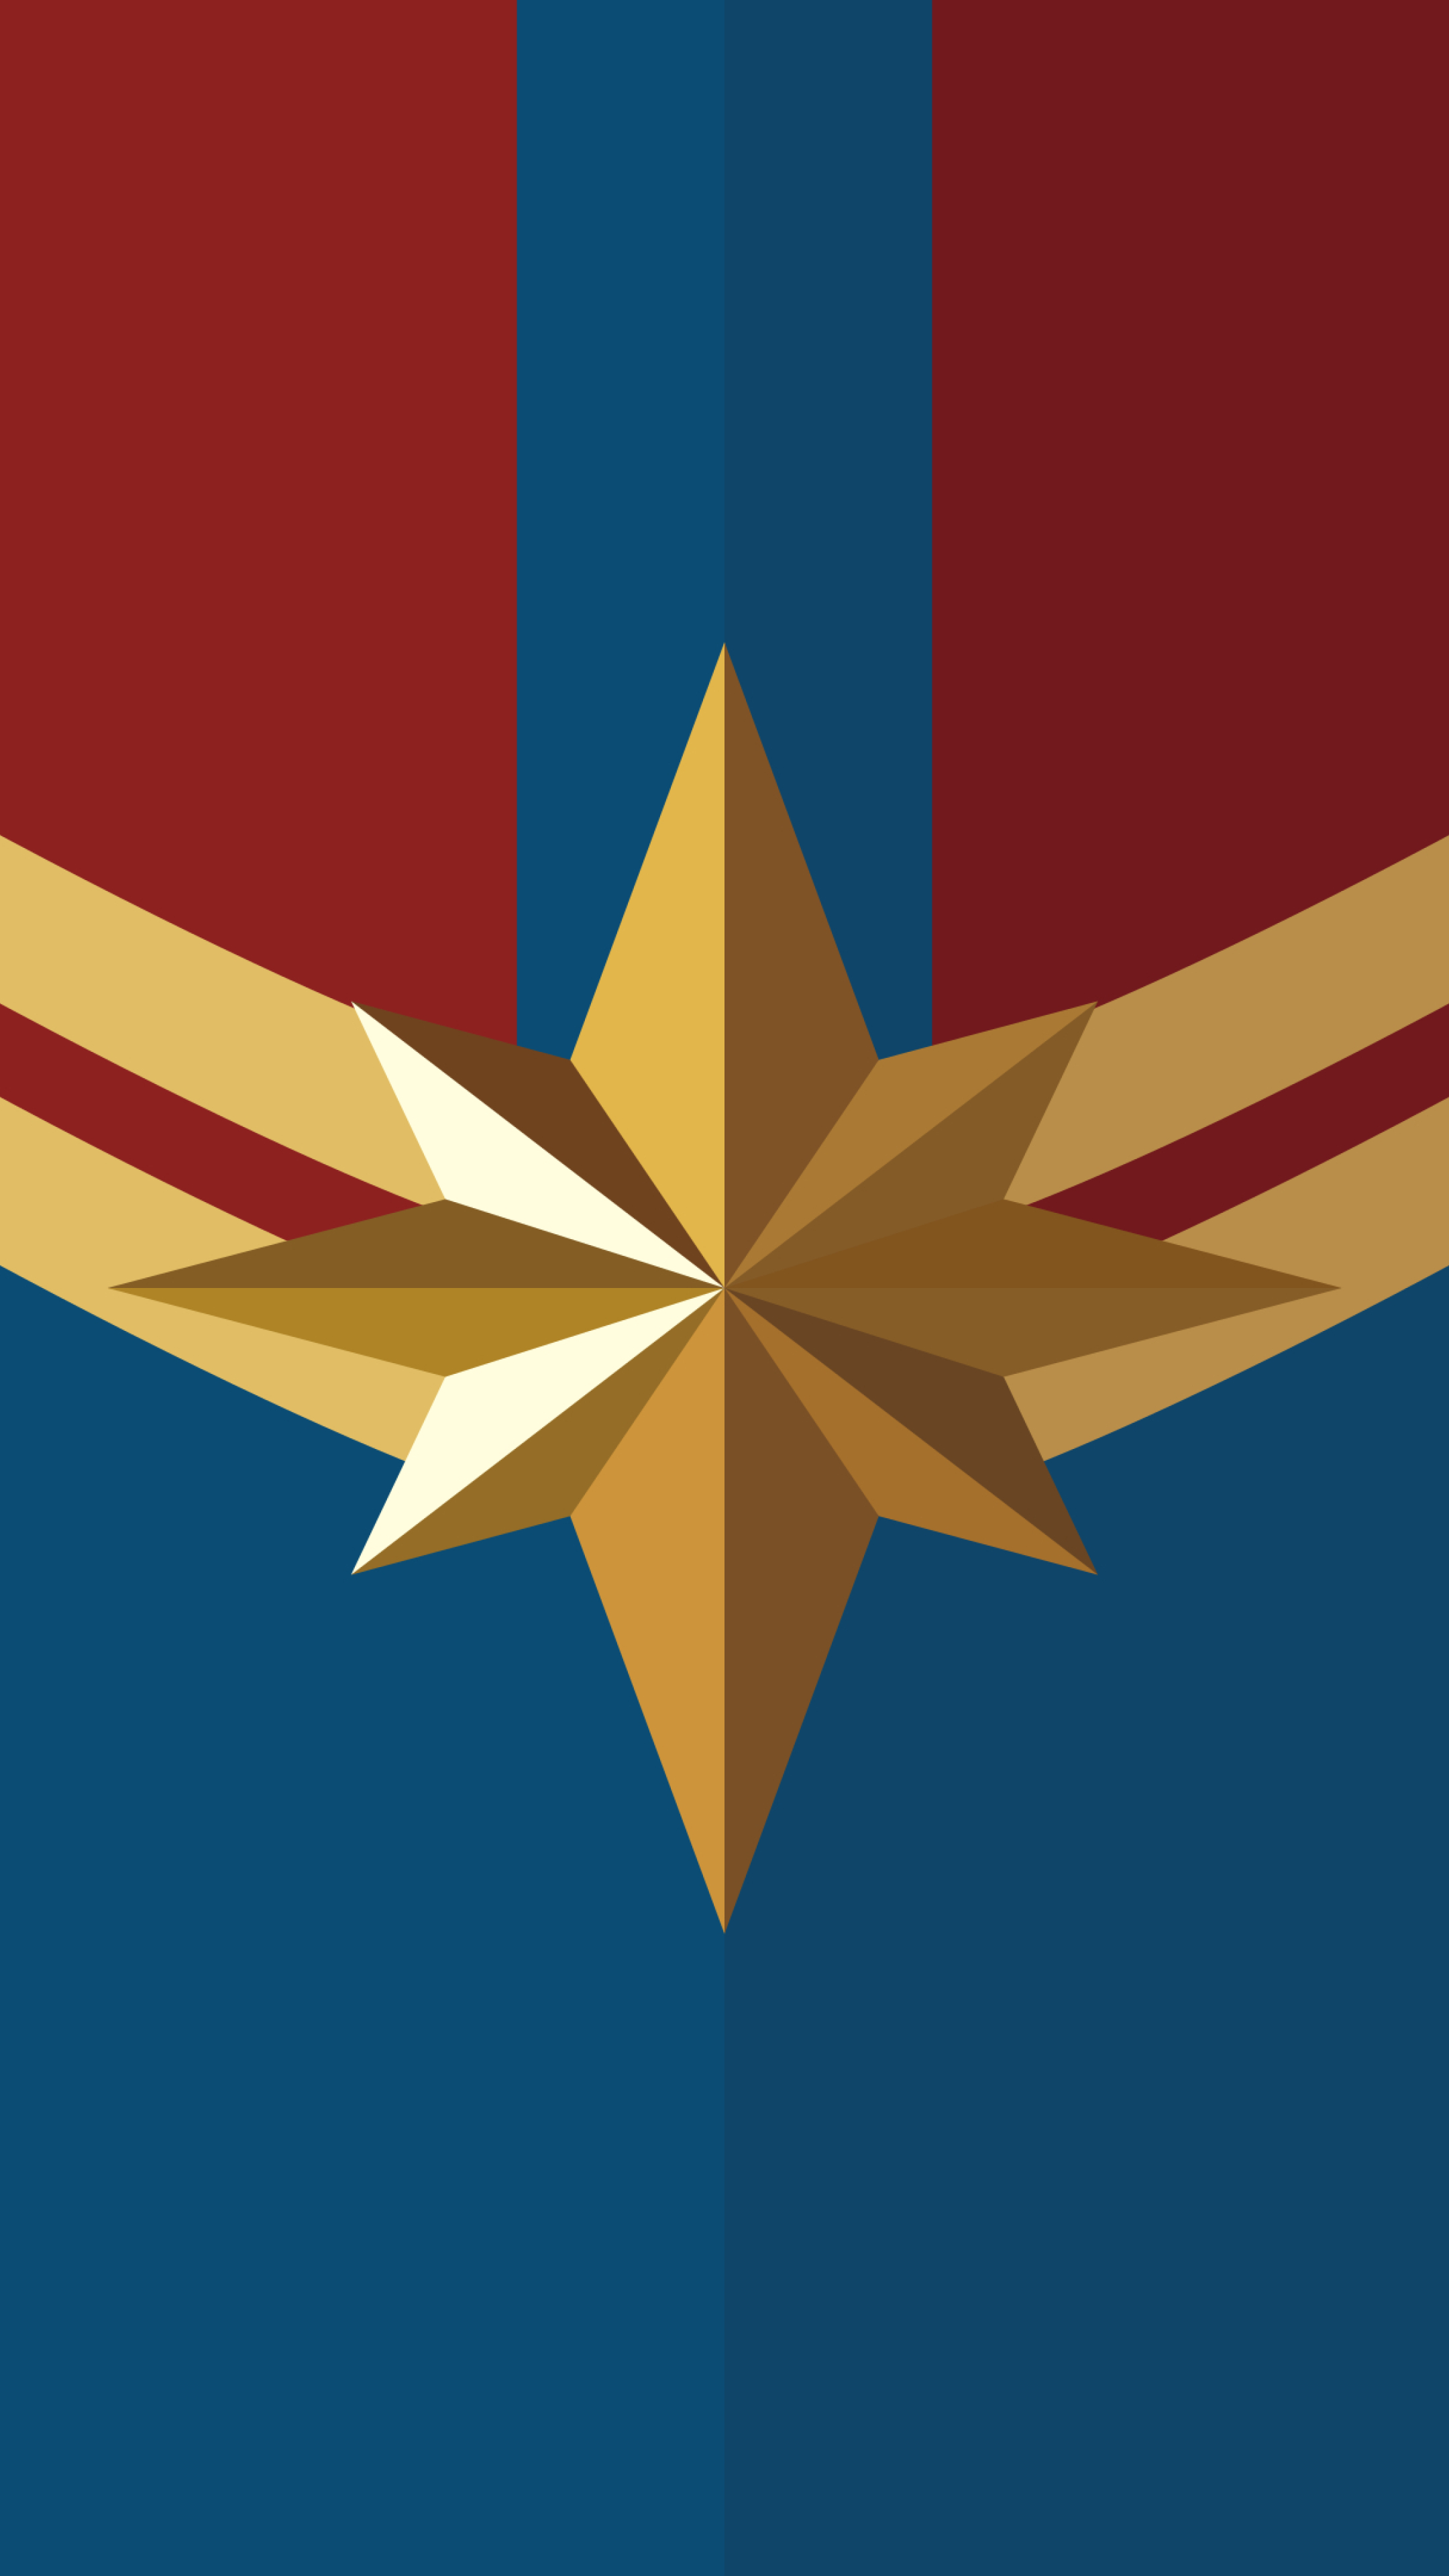 23 Captain Marvel Logo Wallpapers On Wallpapersafari